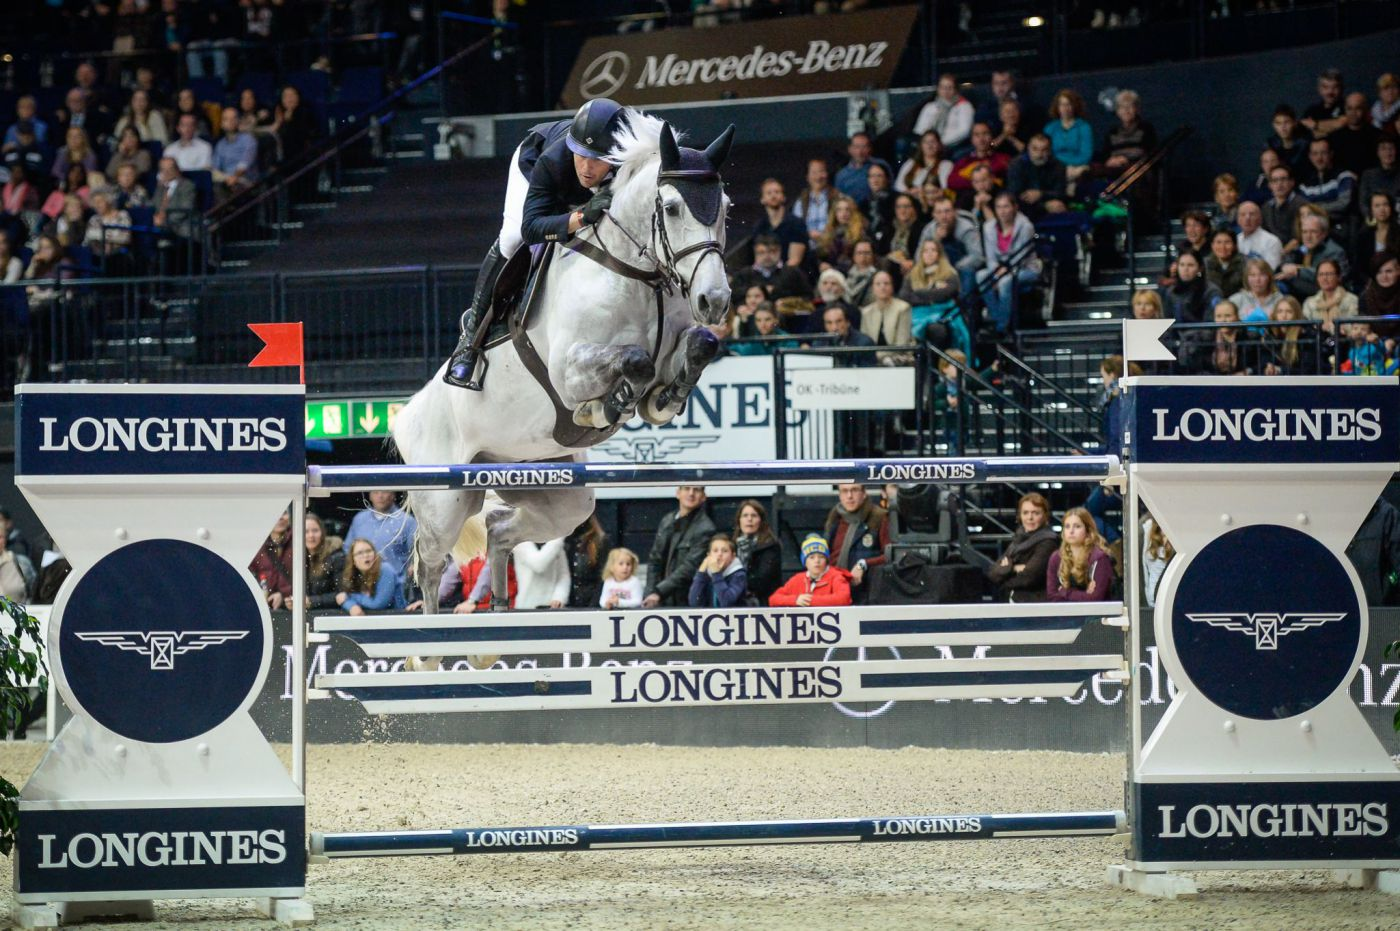 Longines Show Jumping Event: Sergio Alvarez Moya (ESP) wins the Swiss leg of the Longines FEI World Cup™ in Zurich 5